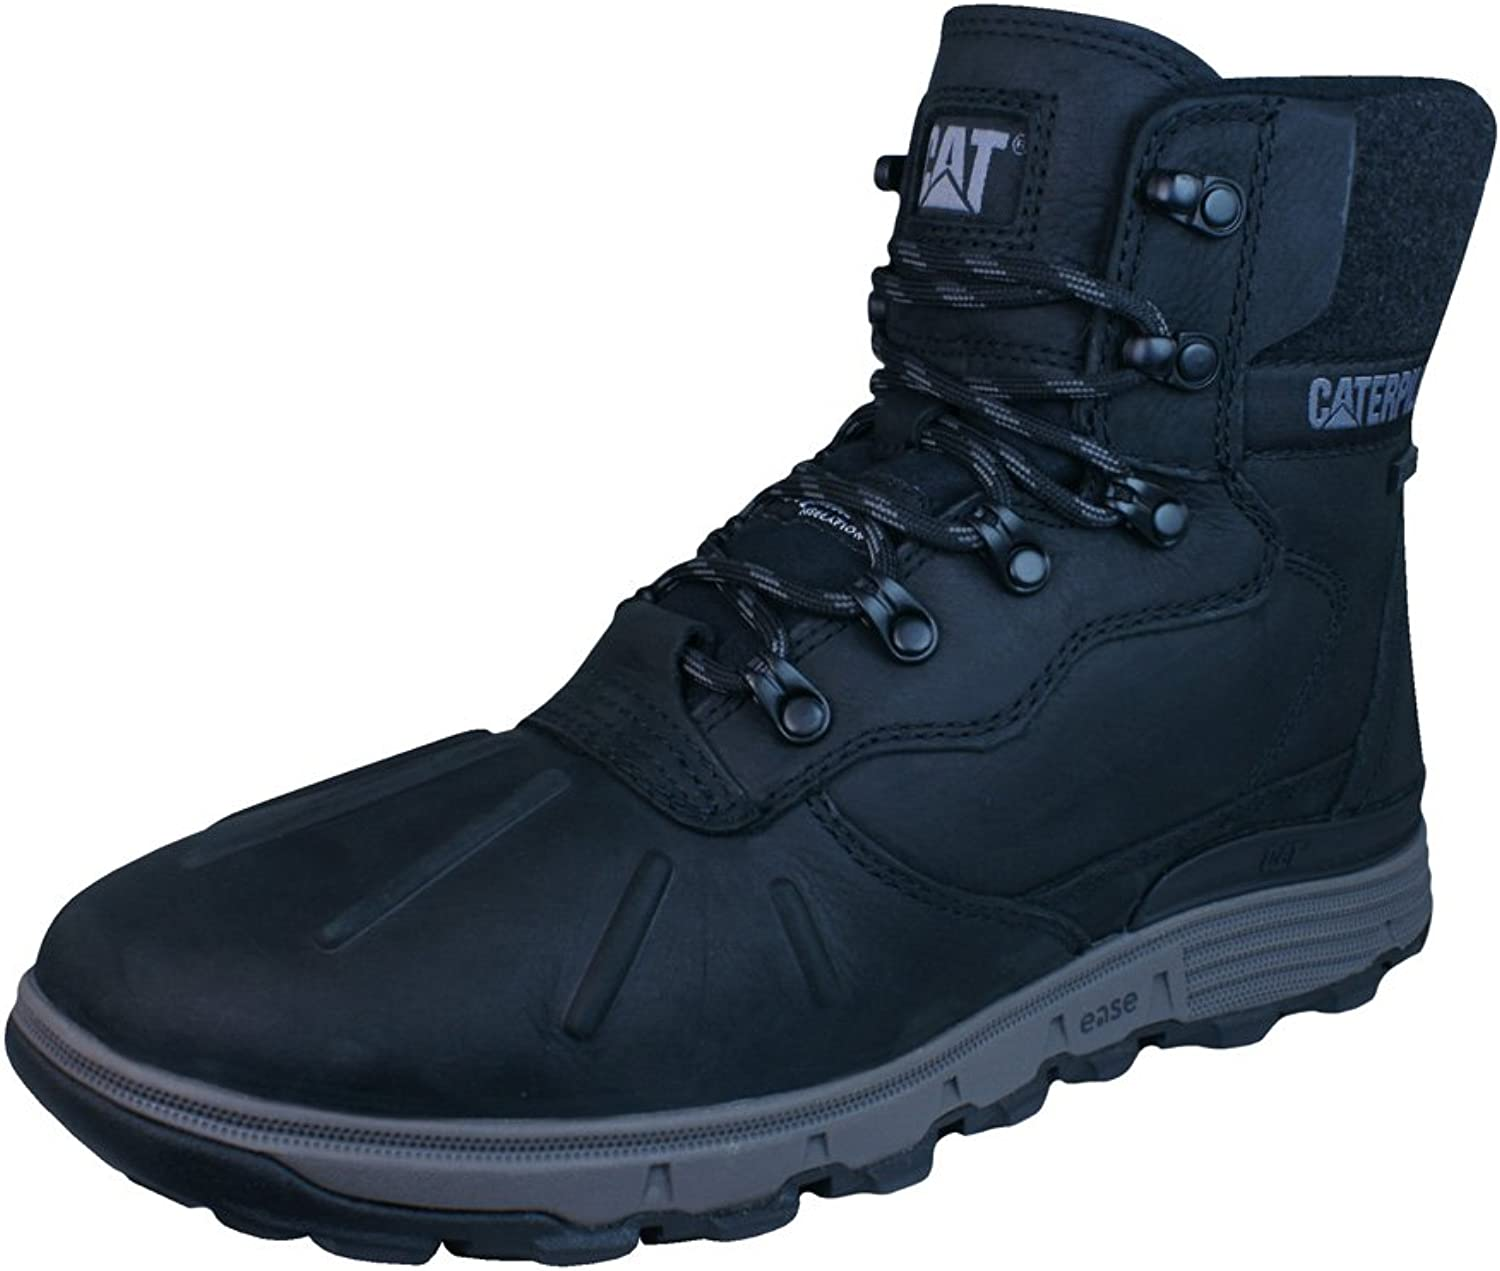 Caterpillar Stiction Hiker Ice Mens Leather Waterproof Boots